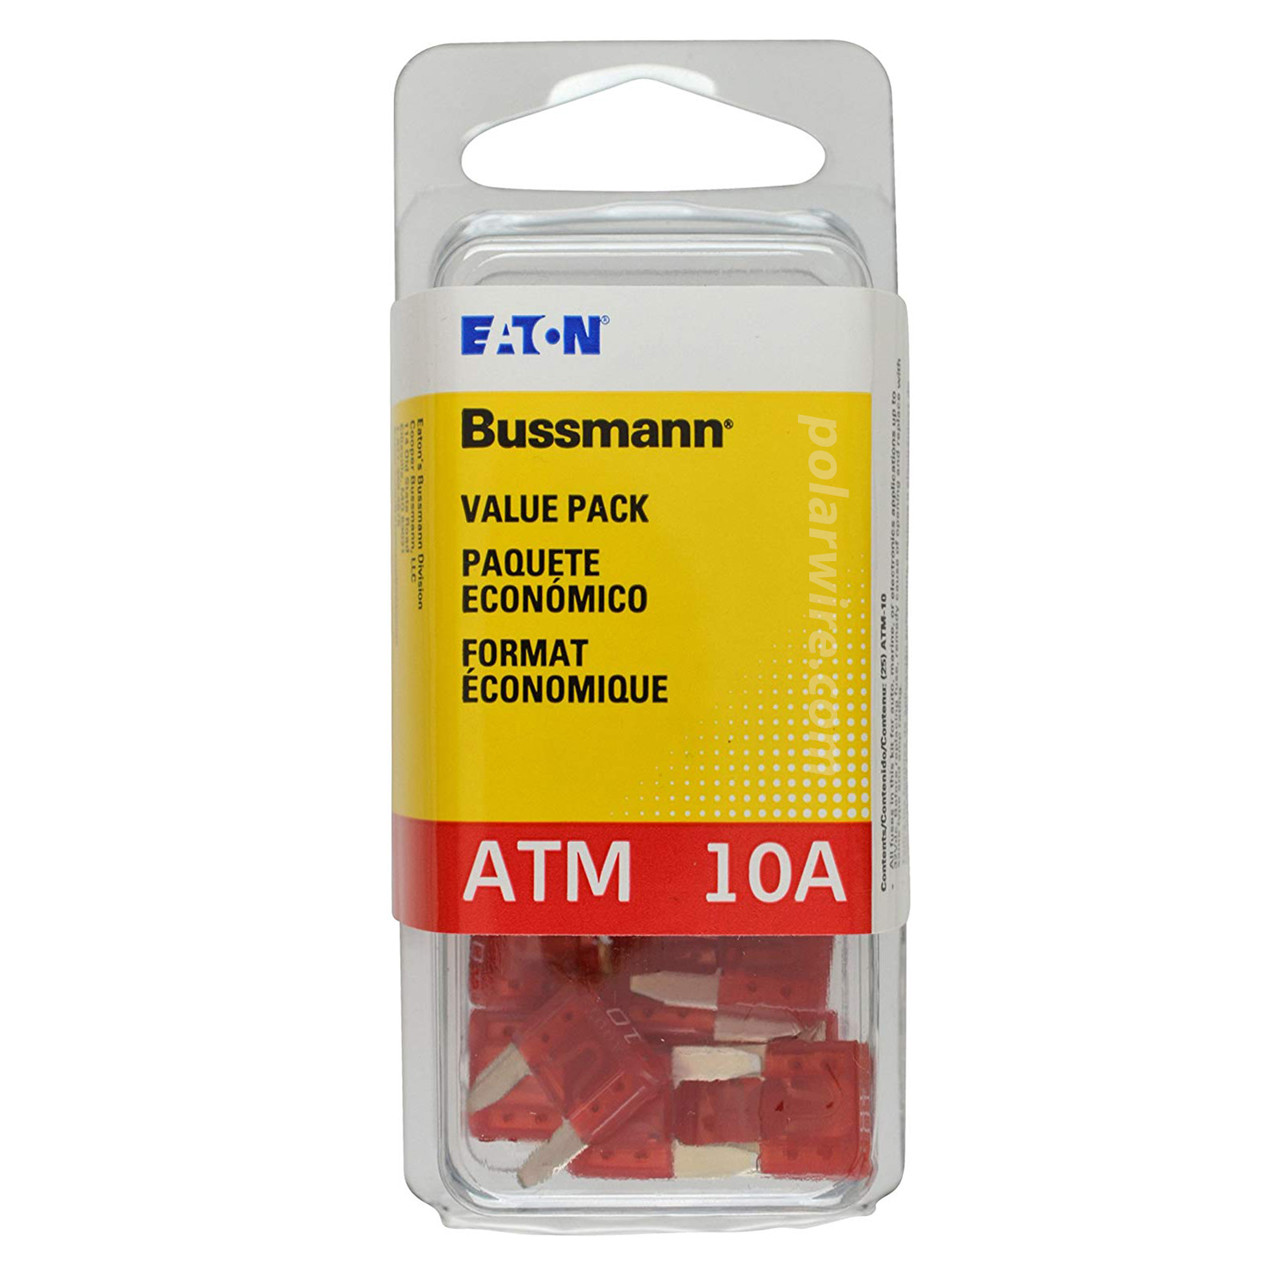 ATM mini blade 10 amp fuse red Bussmann 25 piece value pack